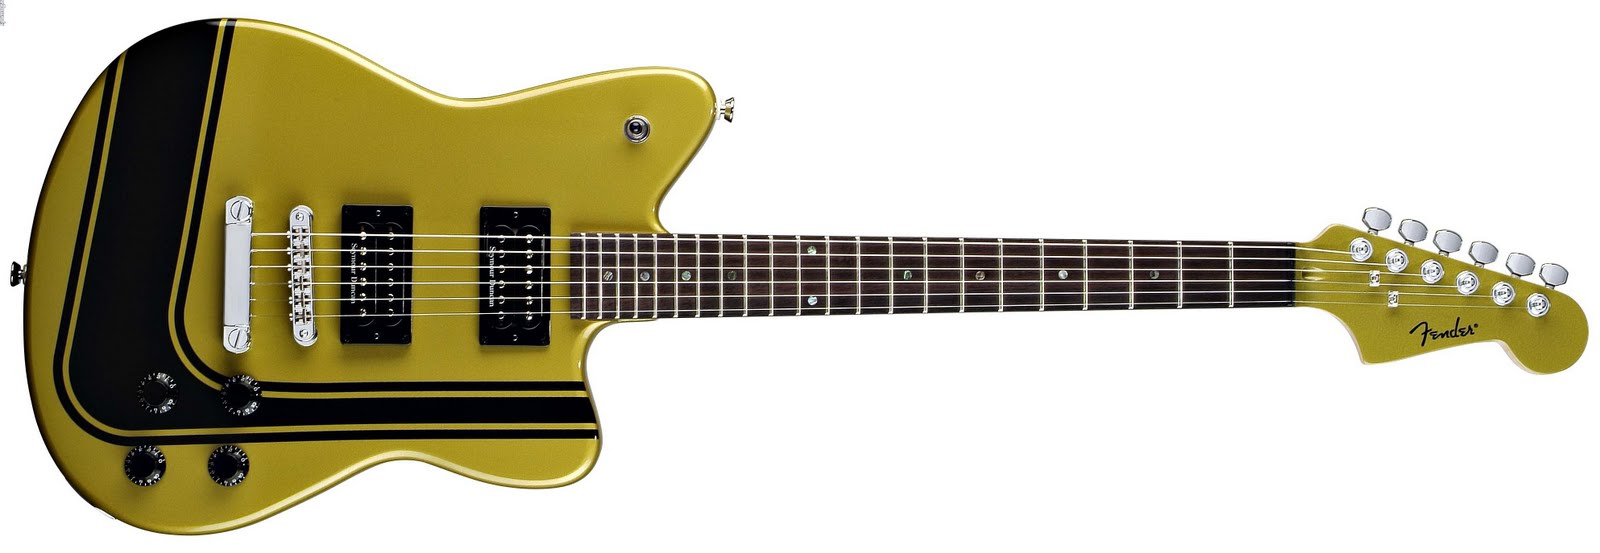 medium resolution of the toronado features two fender atomic humbucking pickups a rosewood fretboard and four chrome knobs 2 volume and 2 tone many models also include a